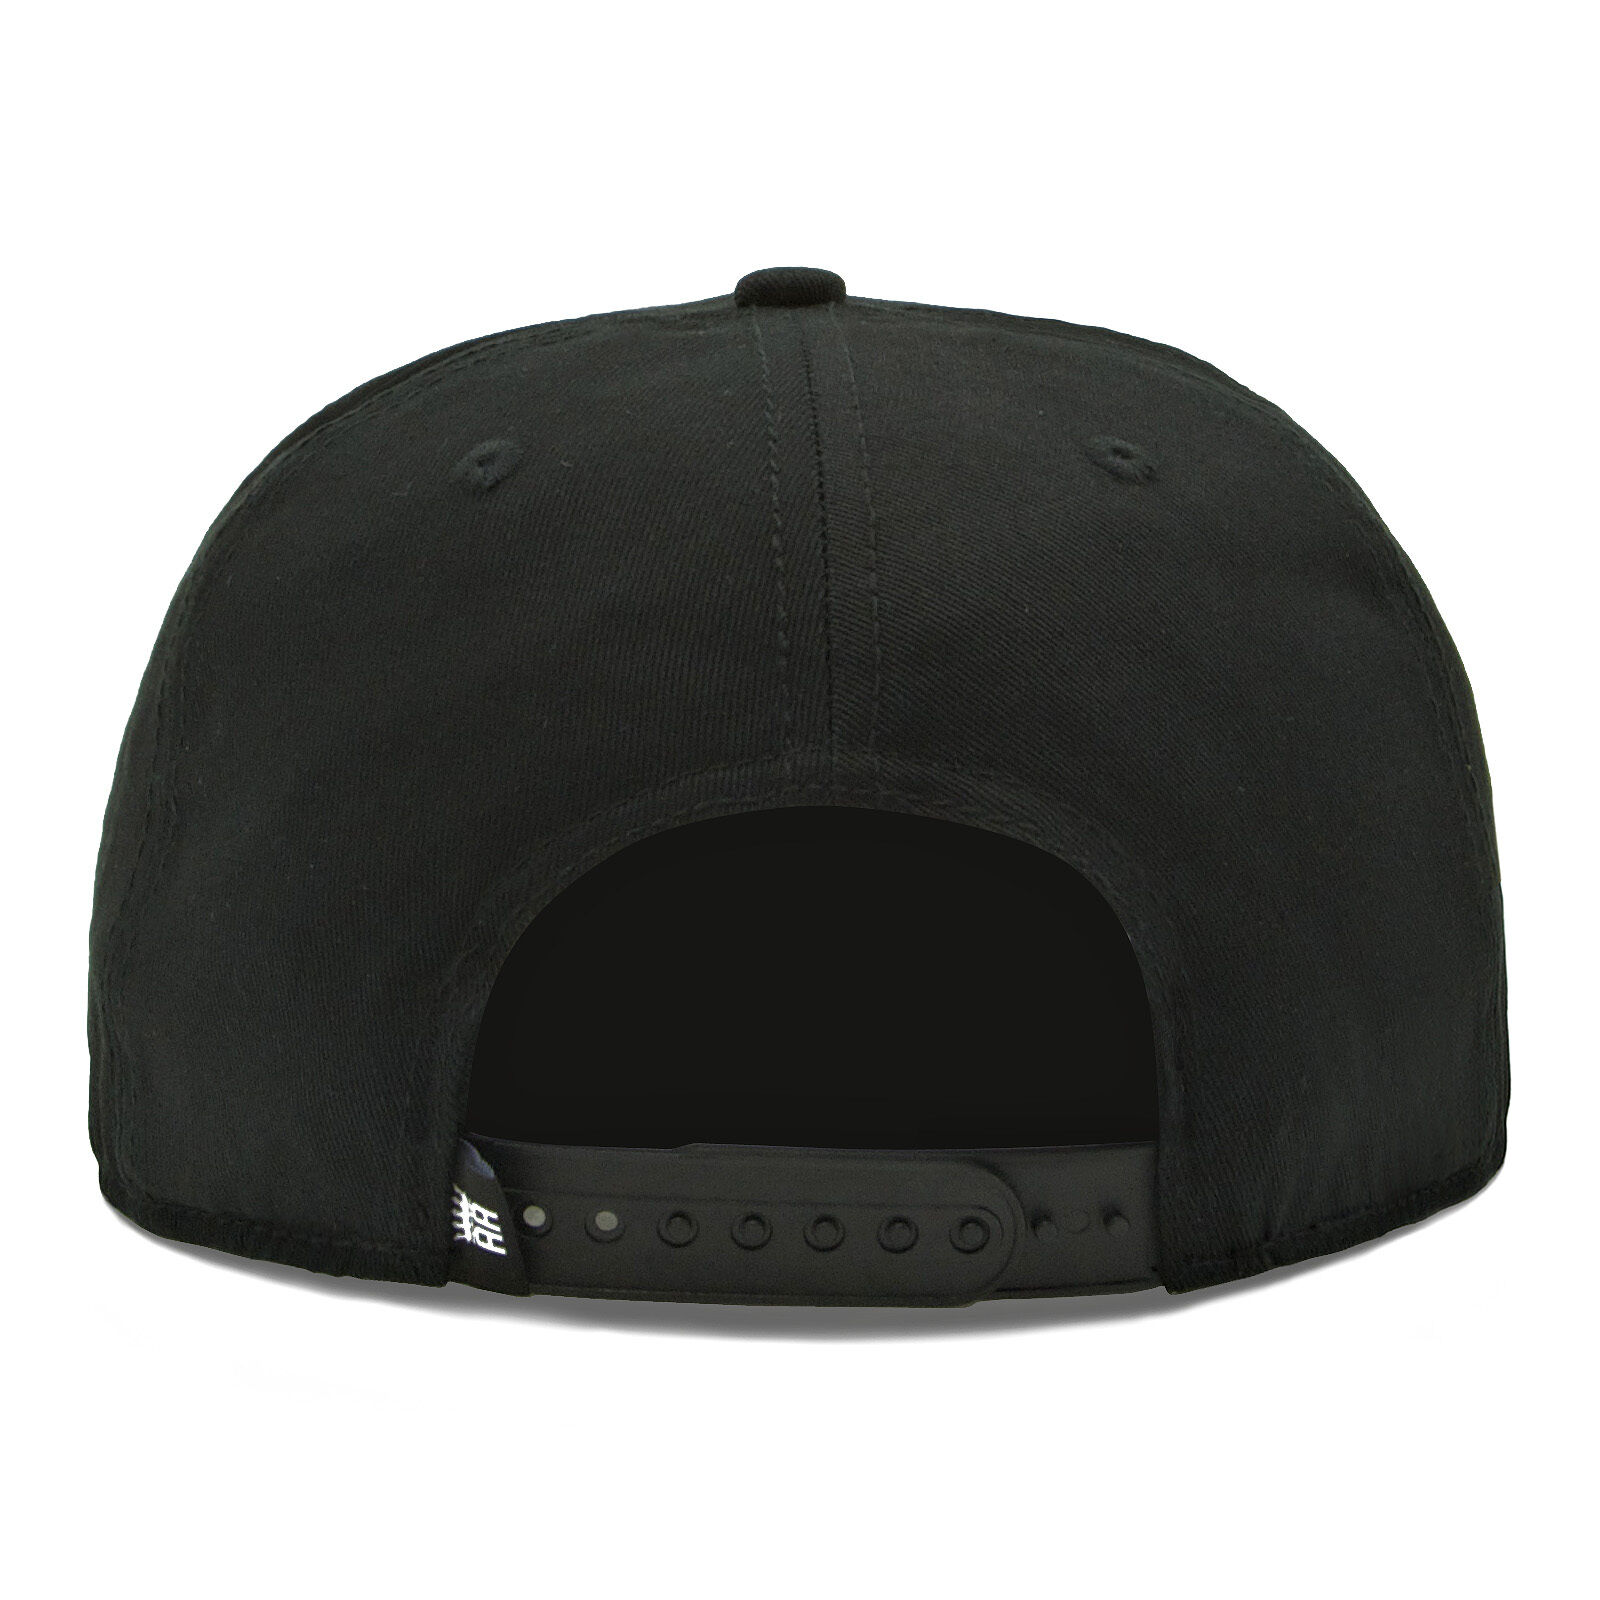 ff0a167fd49 Snapback Black King Ice Pure Luxury Apparel Panel Cap. Adjustable ...